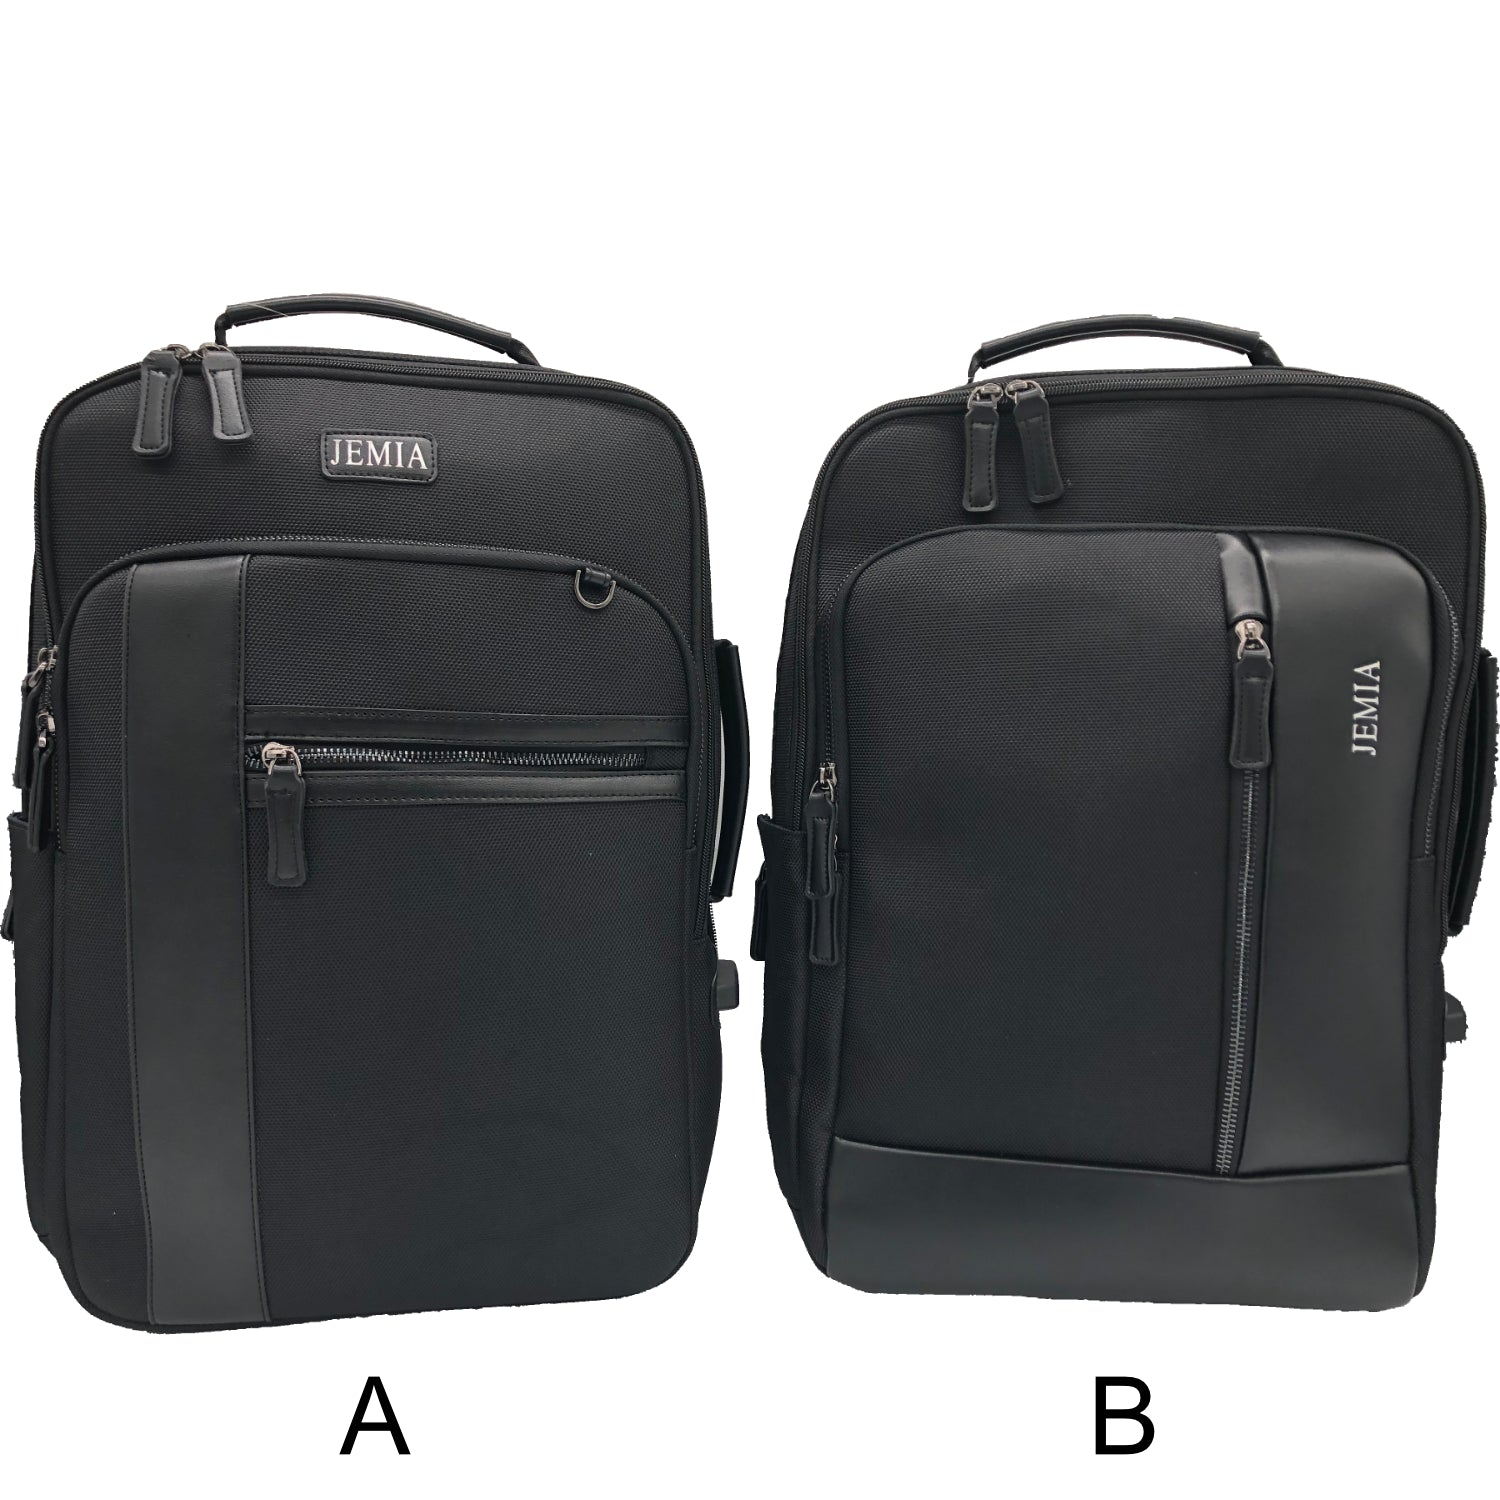 A Quick Survey on upcoming new backpack